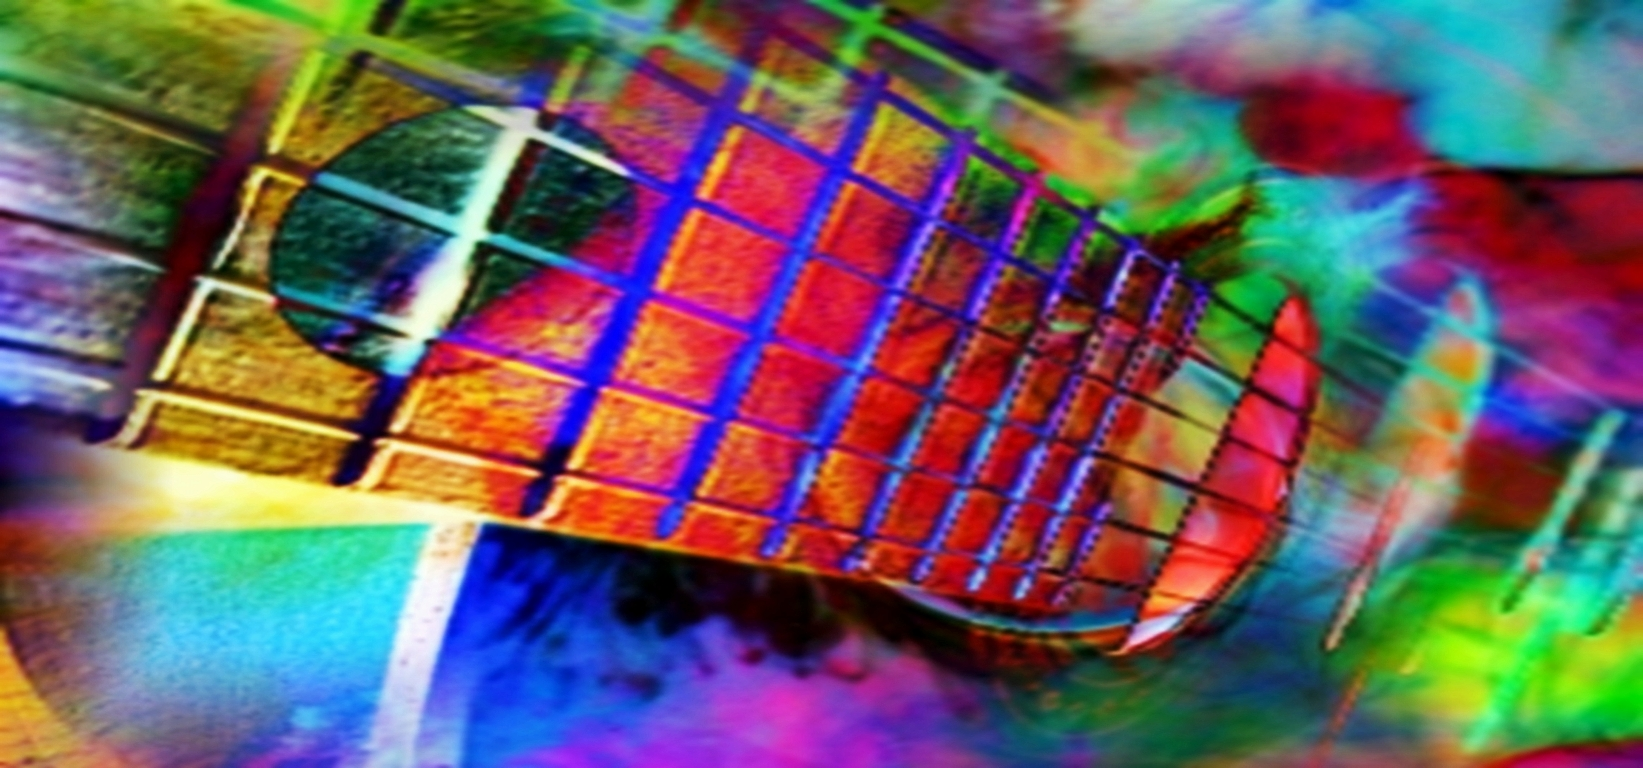 Abstract guitar art for sale | Abstract guitar | by John Russell ...: atdaylong.tripod.com/HendrixGuitarConcerto.html